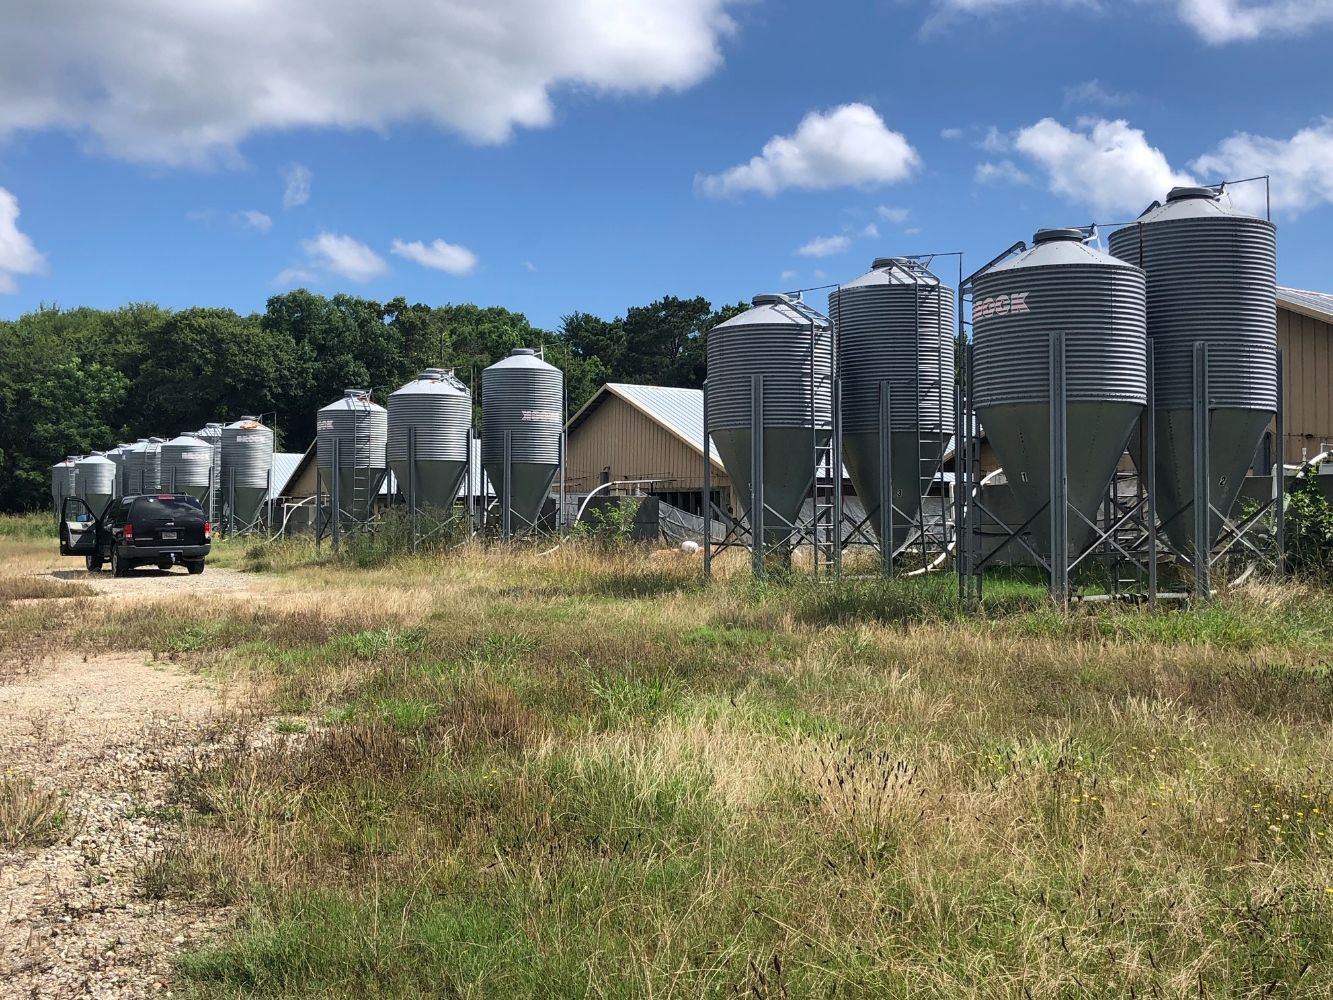 Farm Silos - Vintage Cars - Sound Equipment, & More!  Online-Only-Timed Auction!